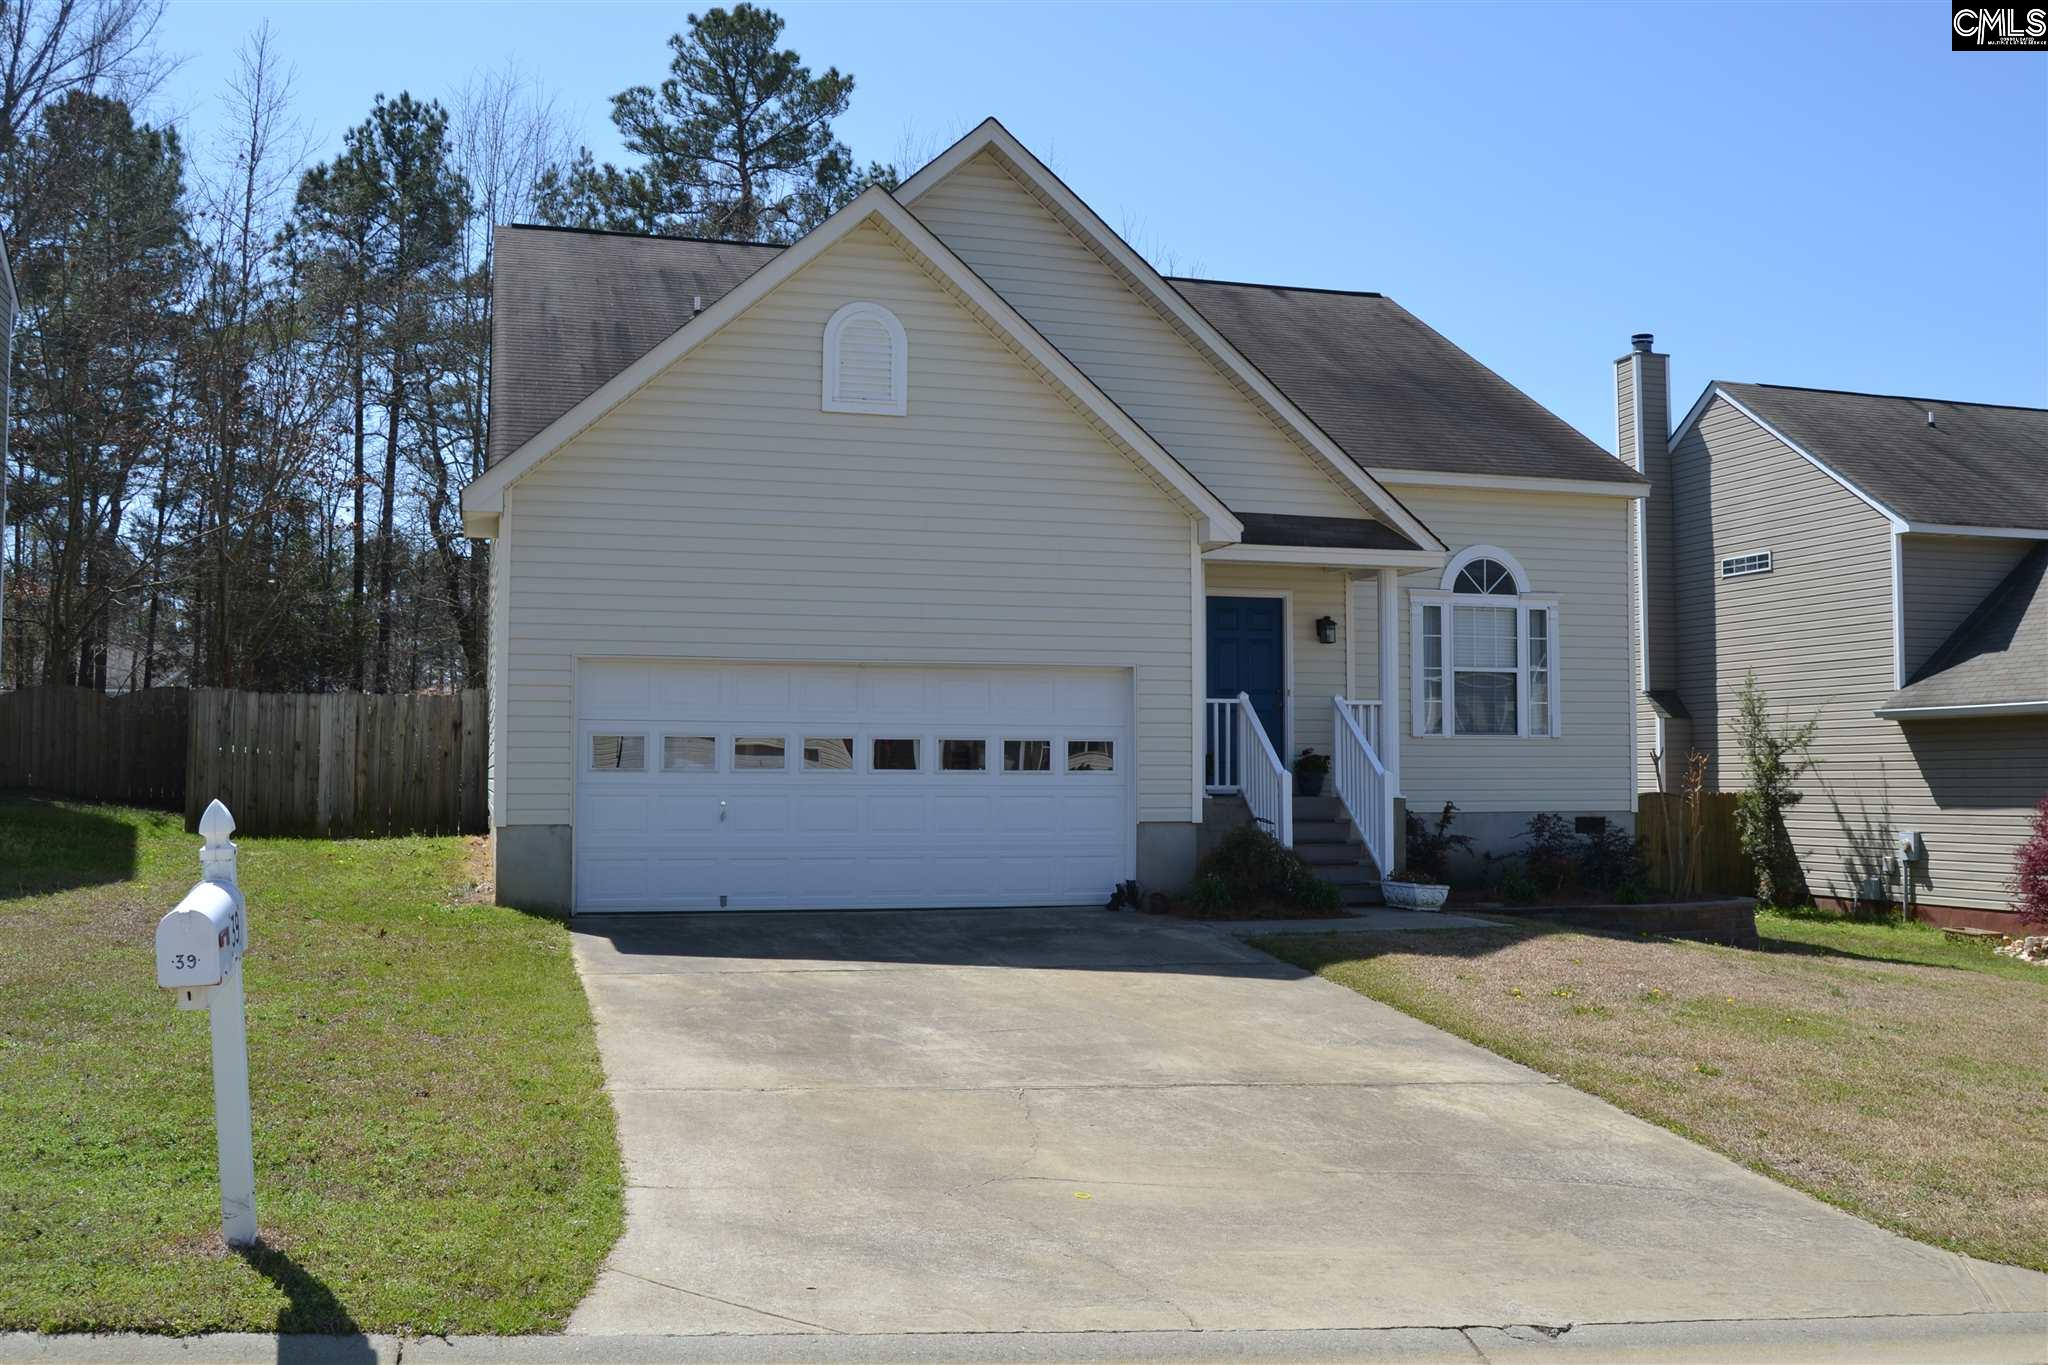 39 Stoney Pointe Chapin, SC 29036